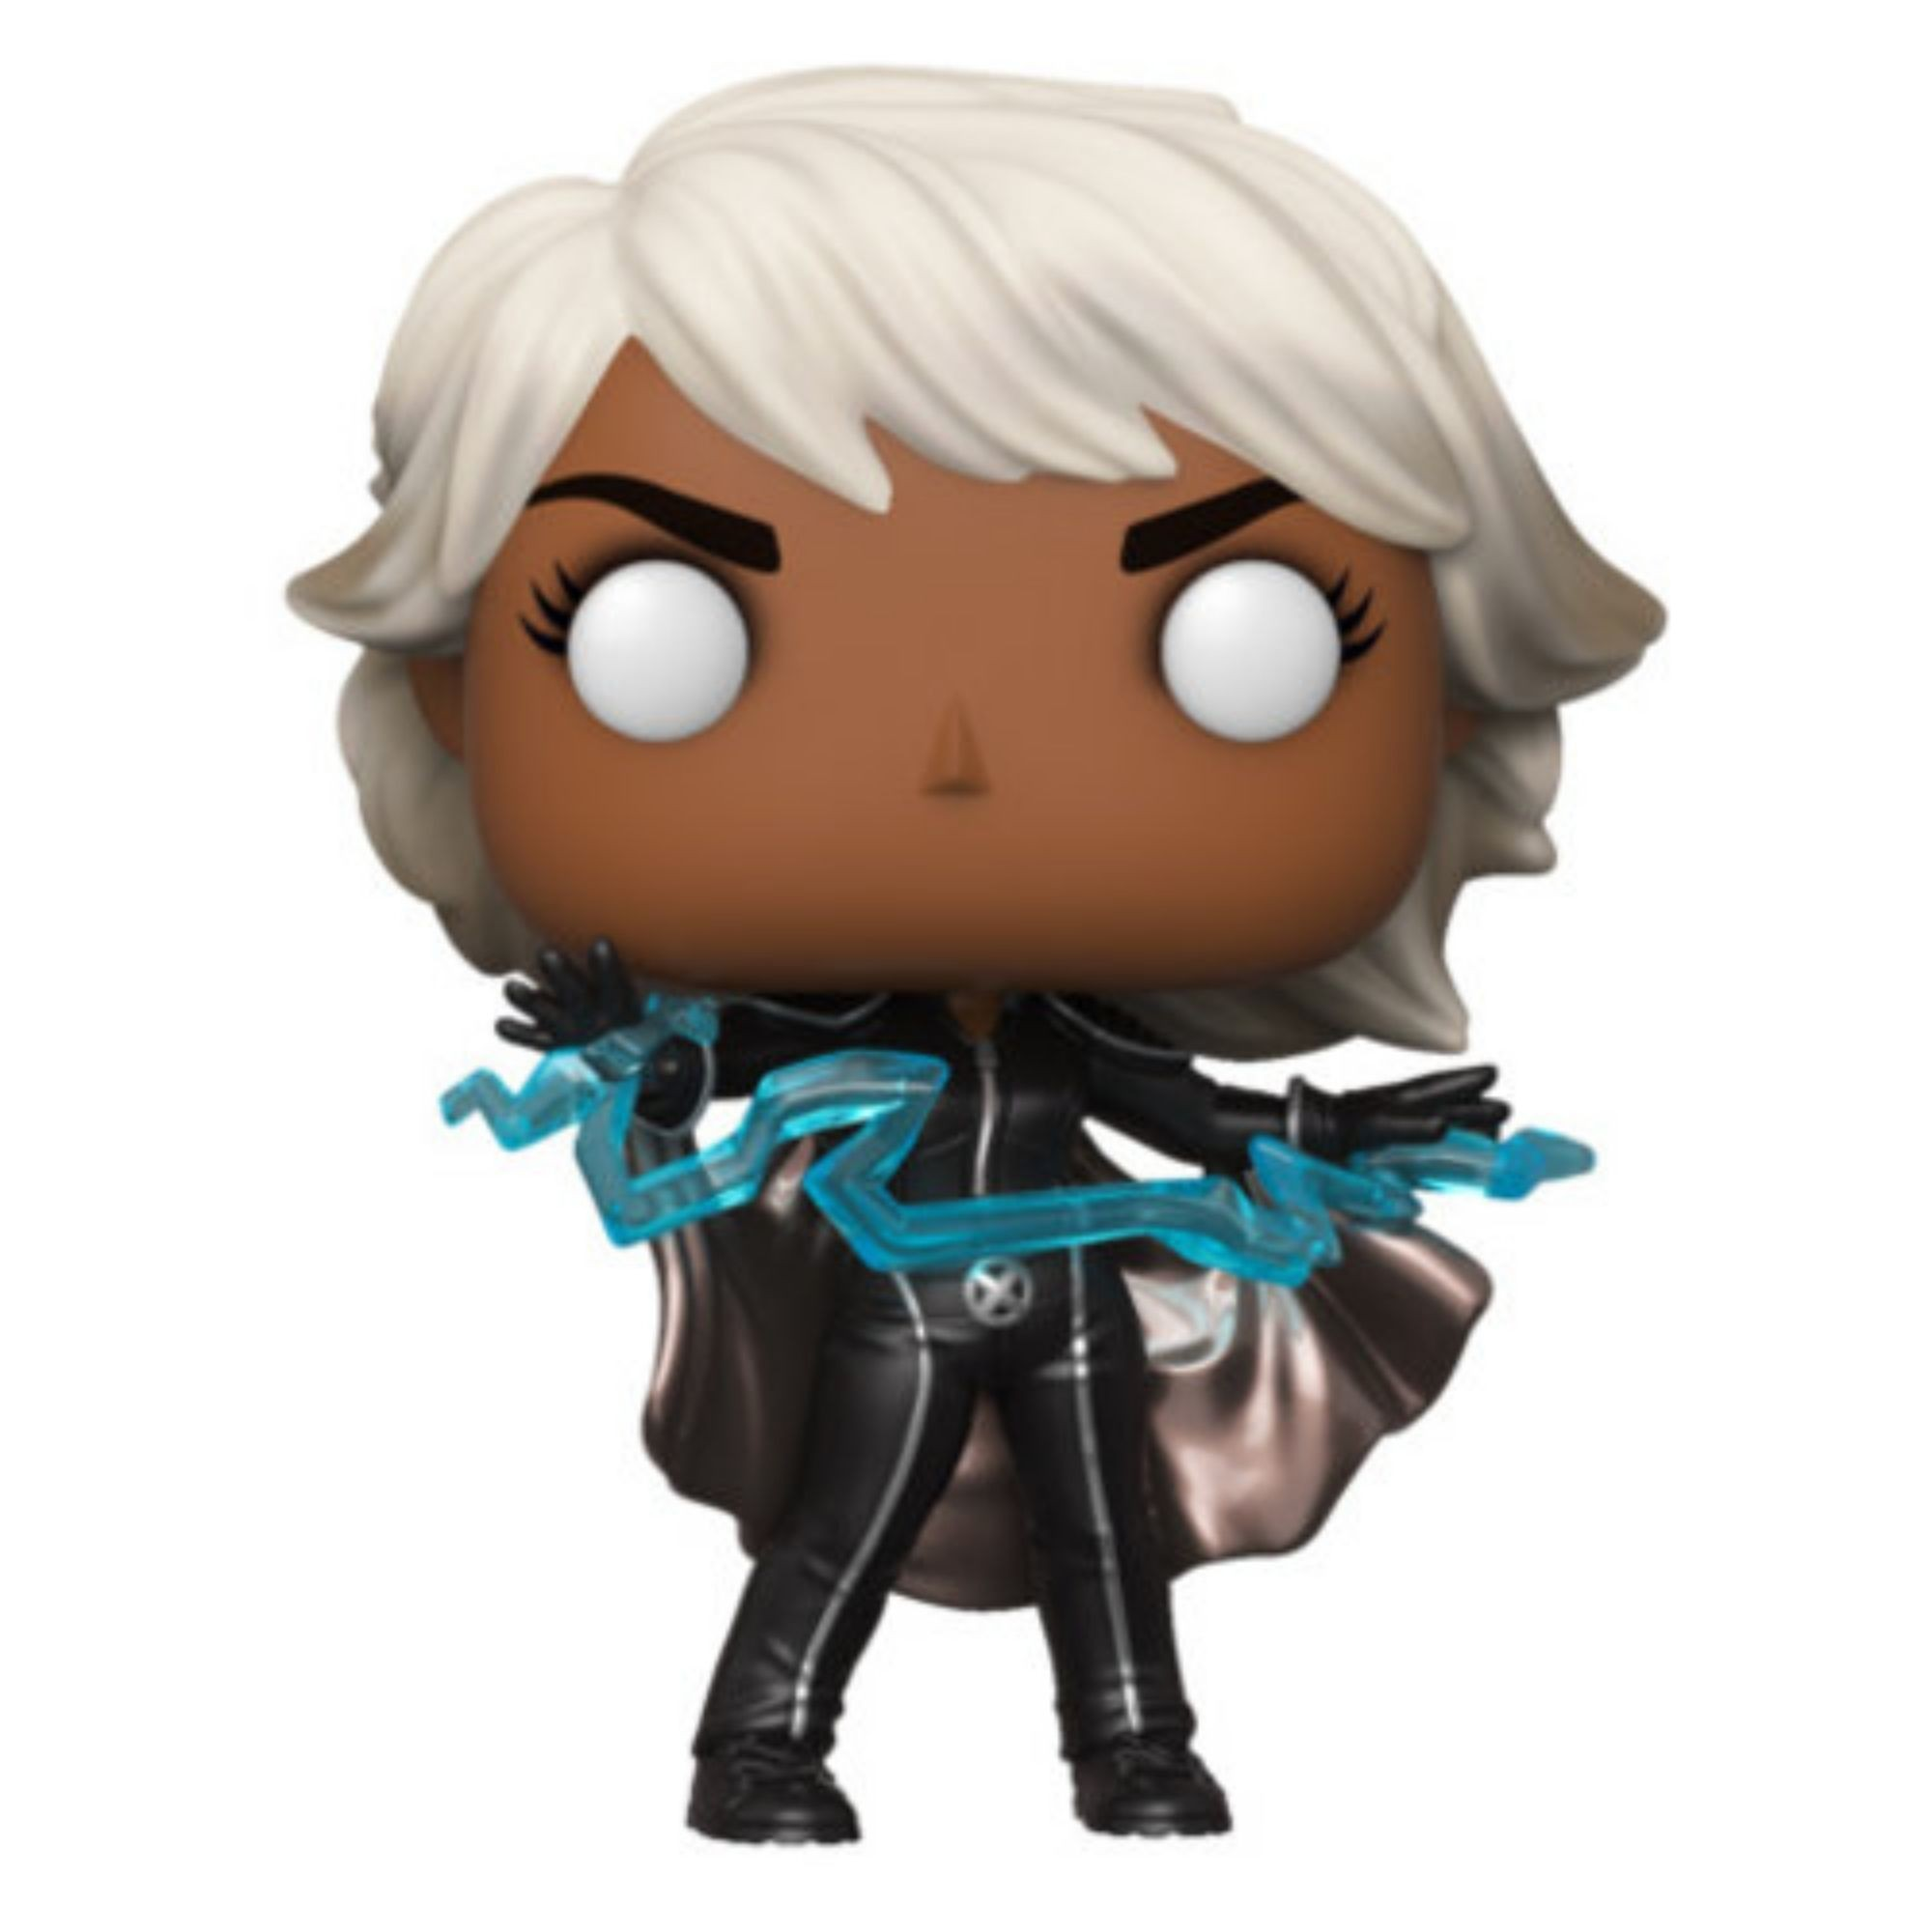 Funko Pop Marvel X-Men Tempestade Storm #642  - Game Land Brinquedos